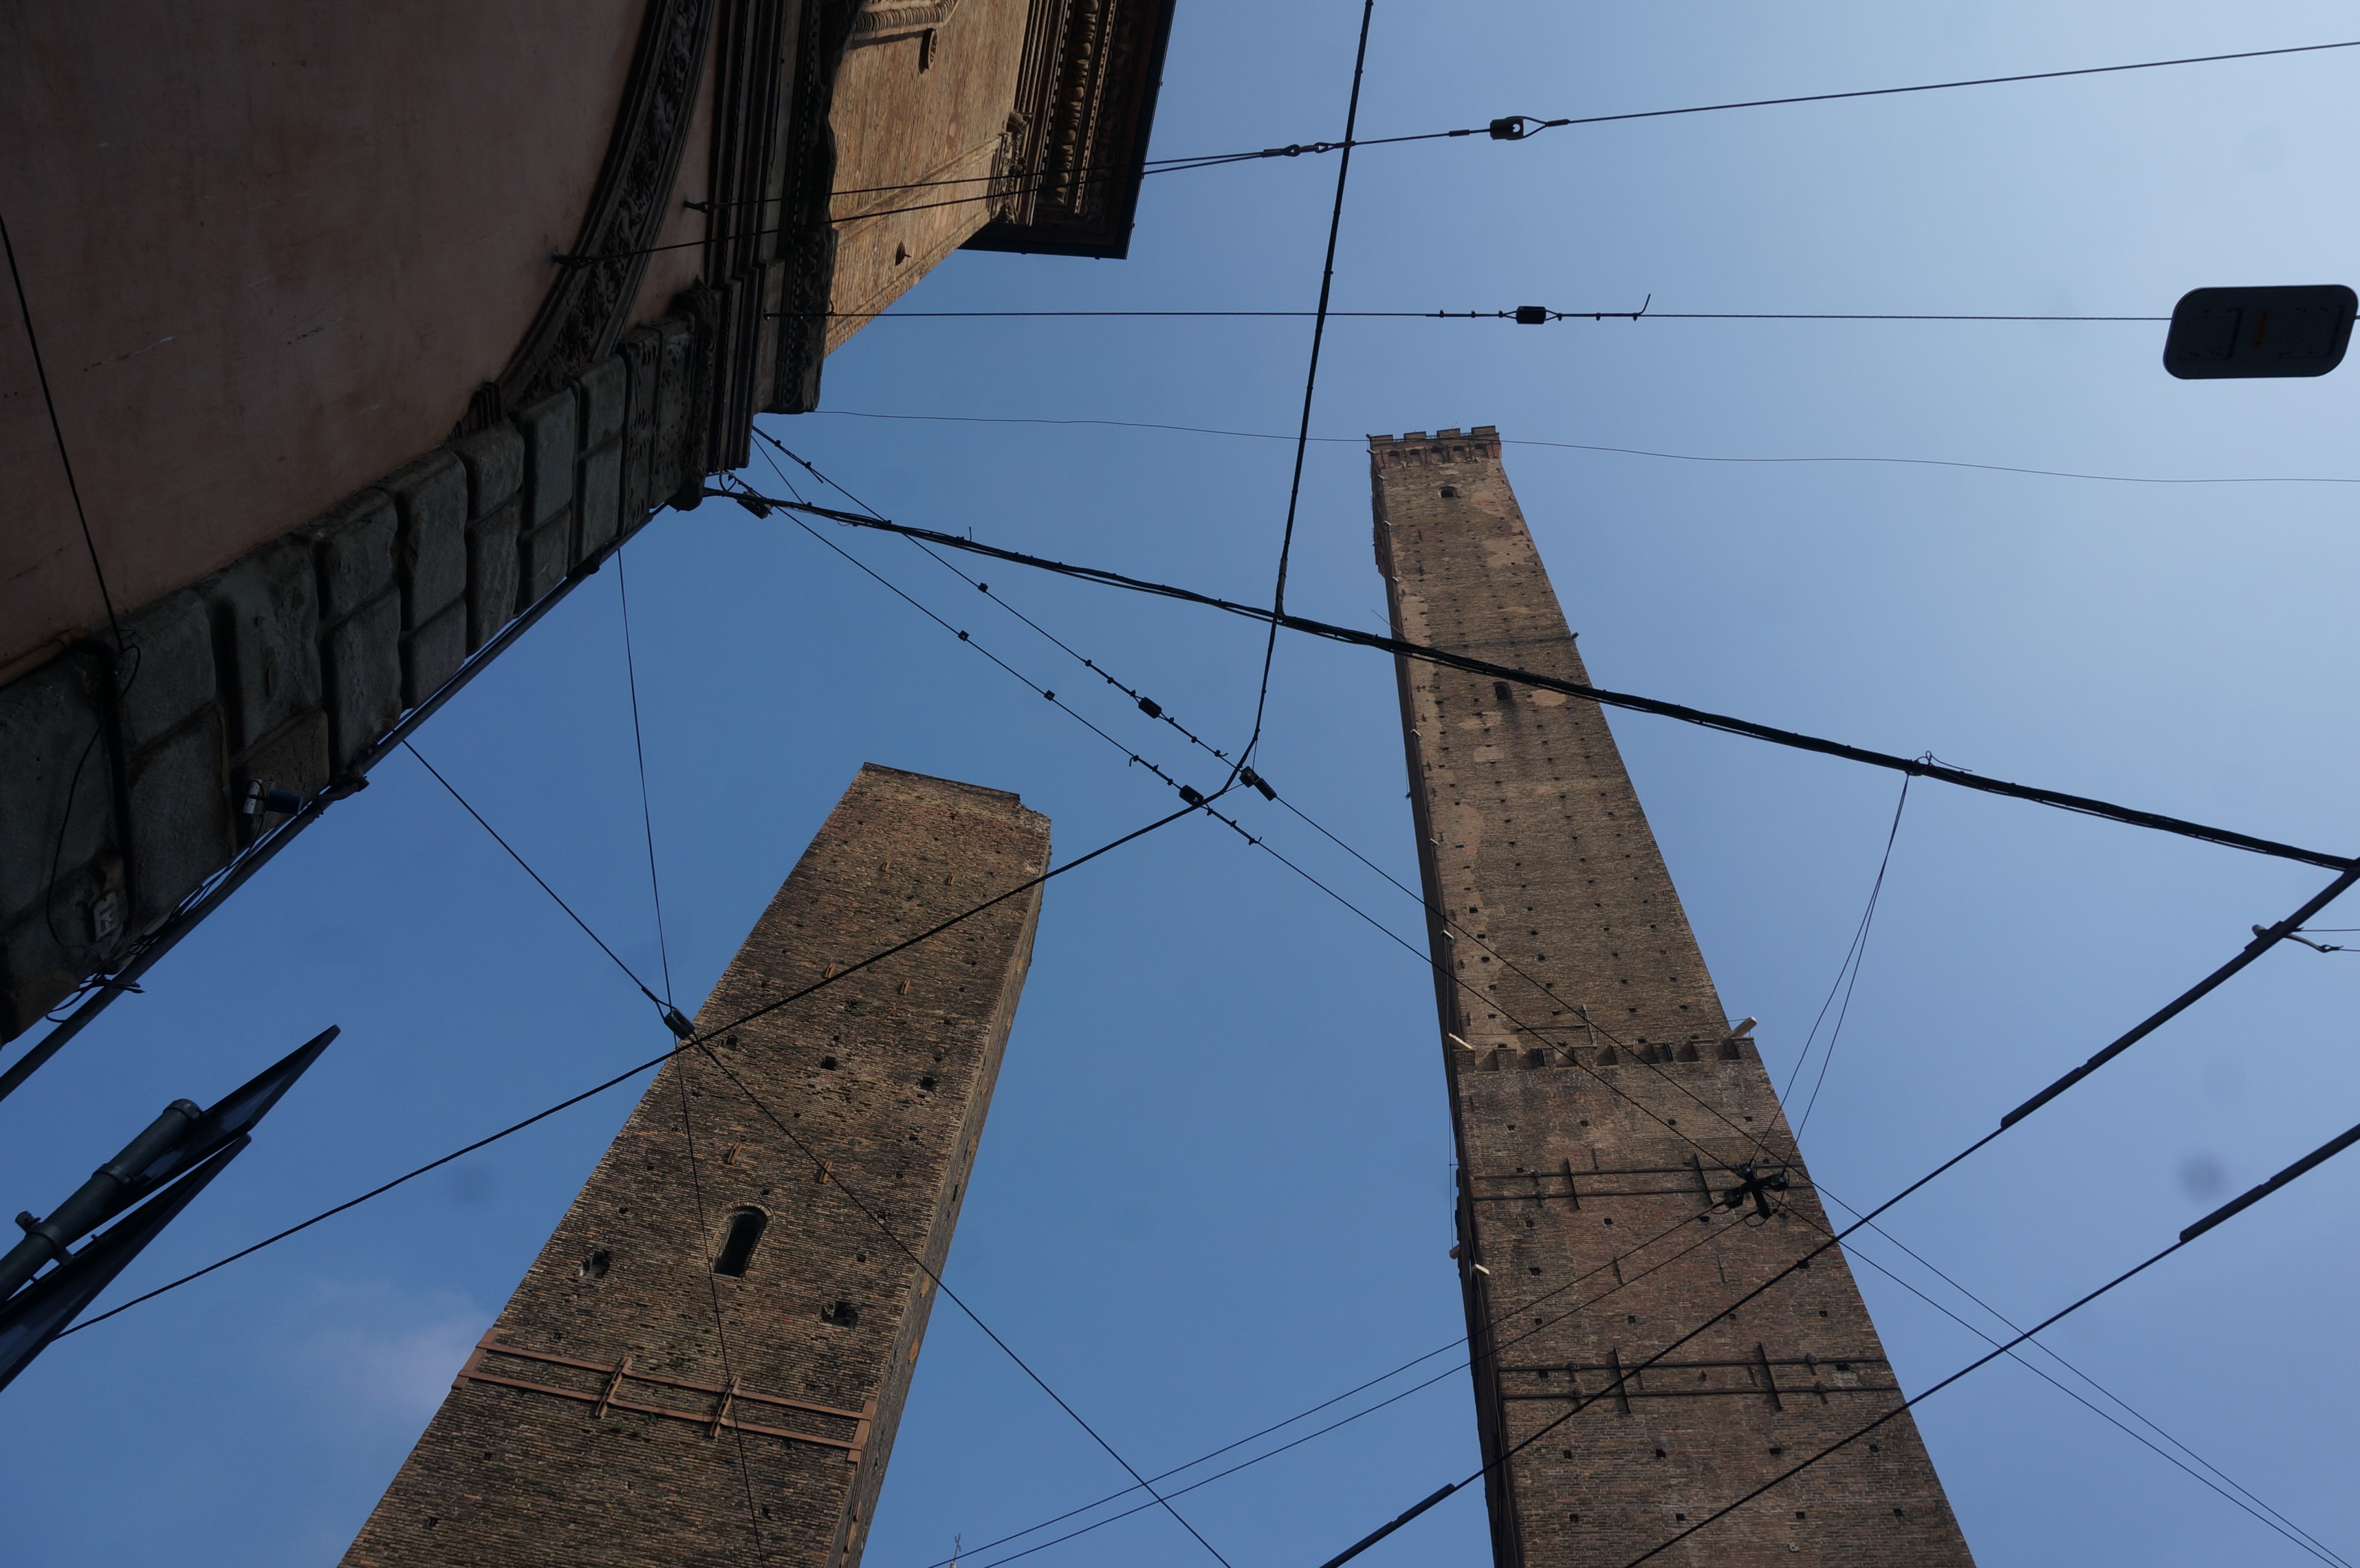 towers-of-bologna